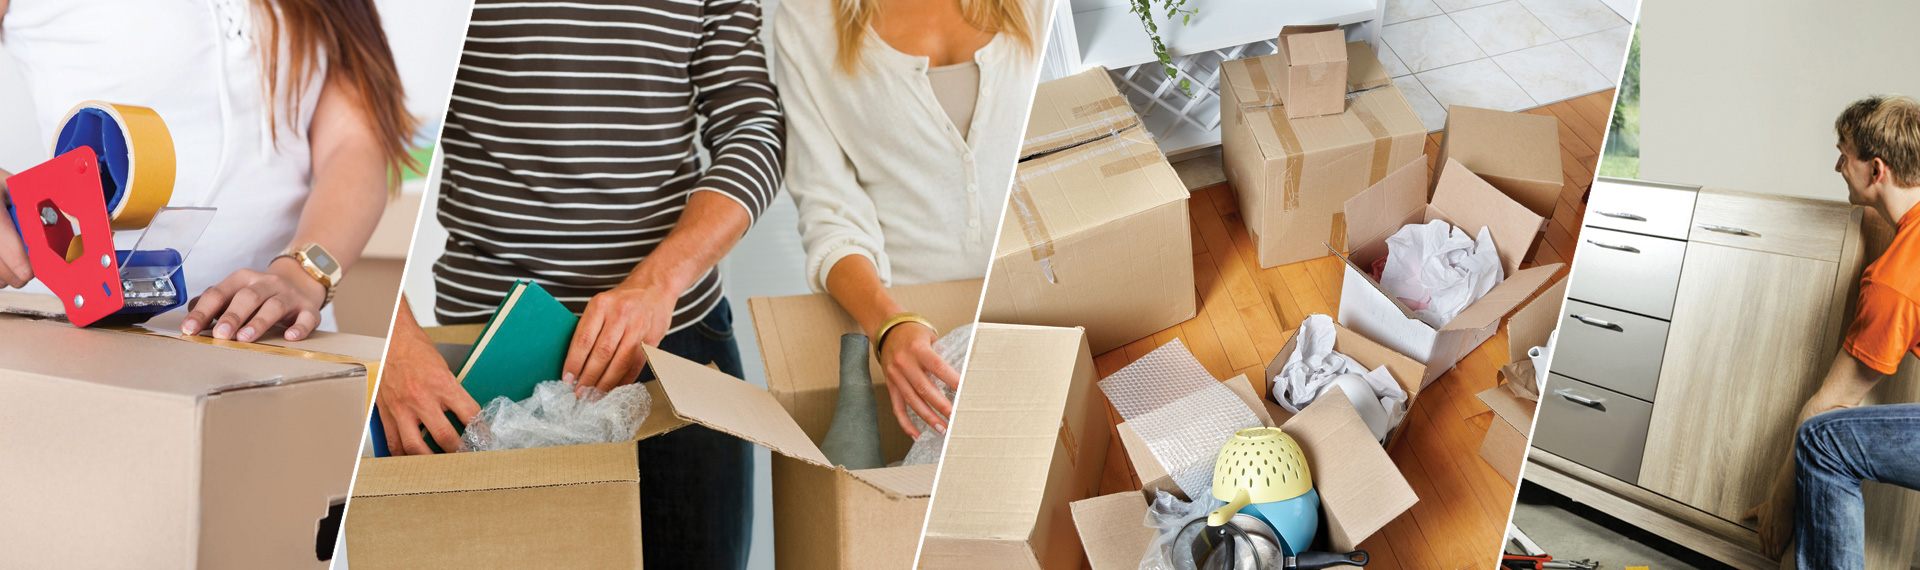 Affordable Moving Services LLC Utica MI